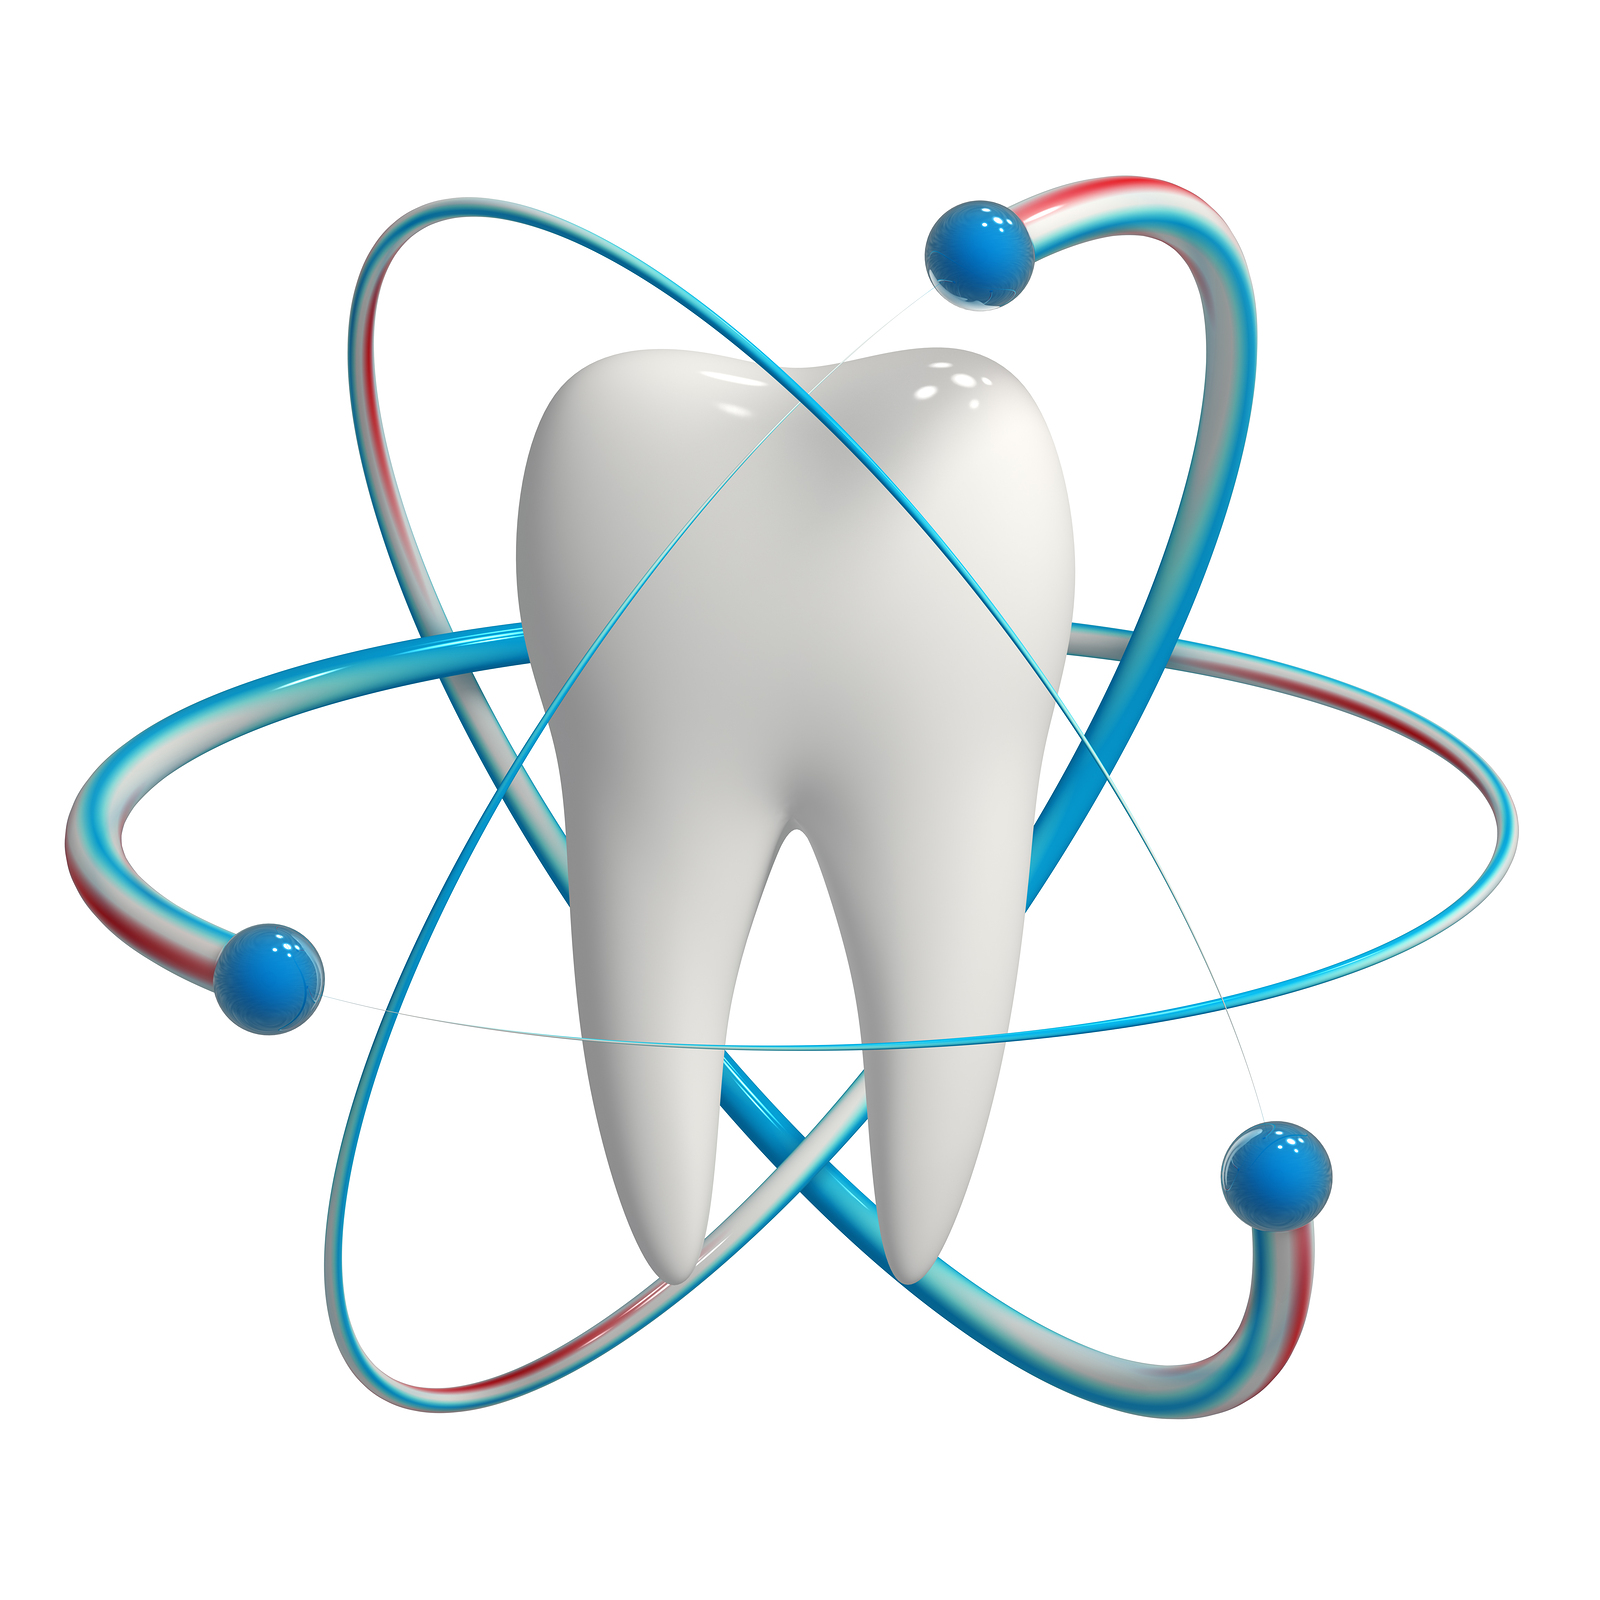 Teeth Care Dental Studio/Academy